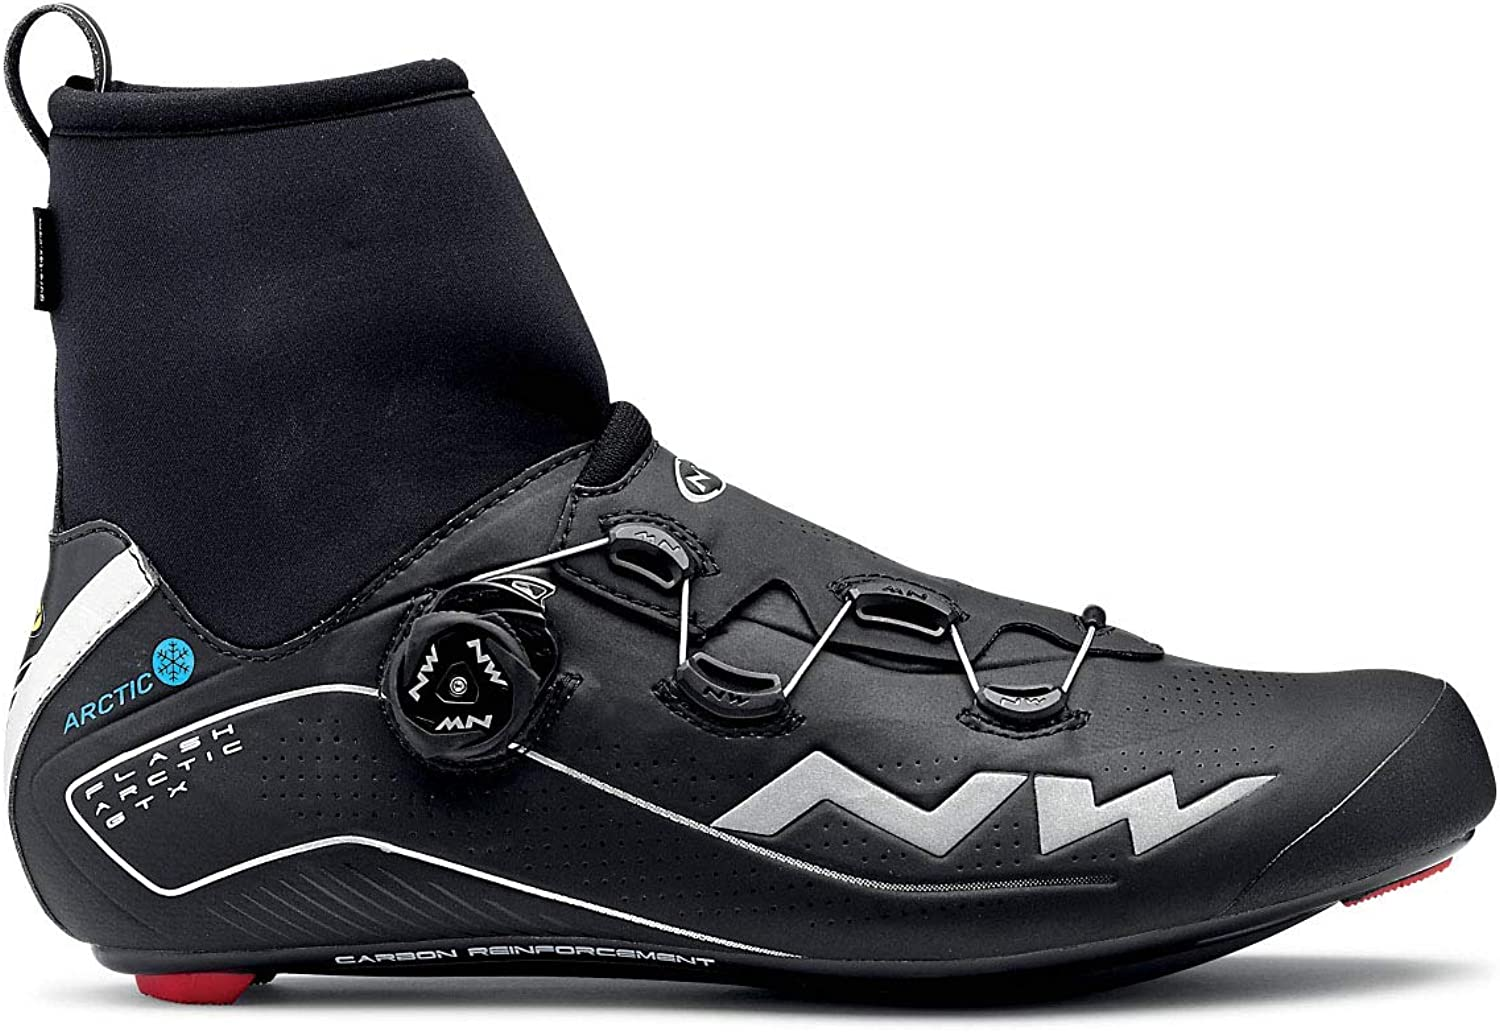 Northwave Northwave Northwave Flash Arctic Gtx Thermal Winter Road Boot Sport Cycling Activewar  Beställ nu